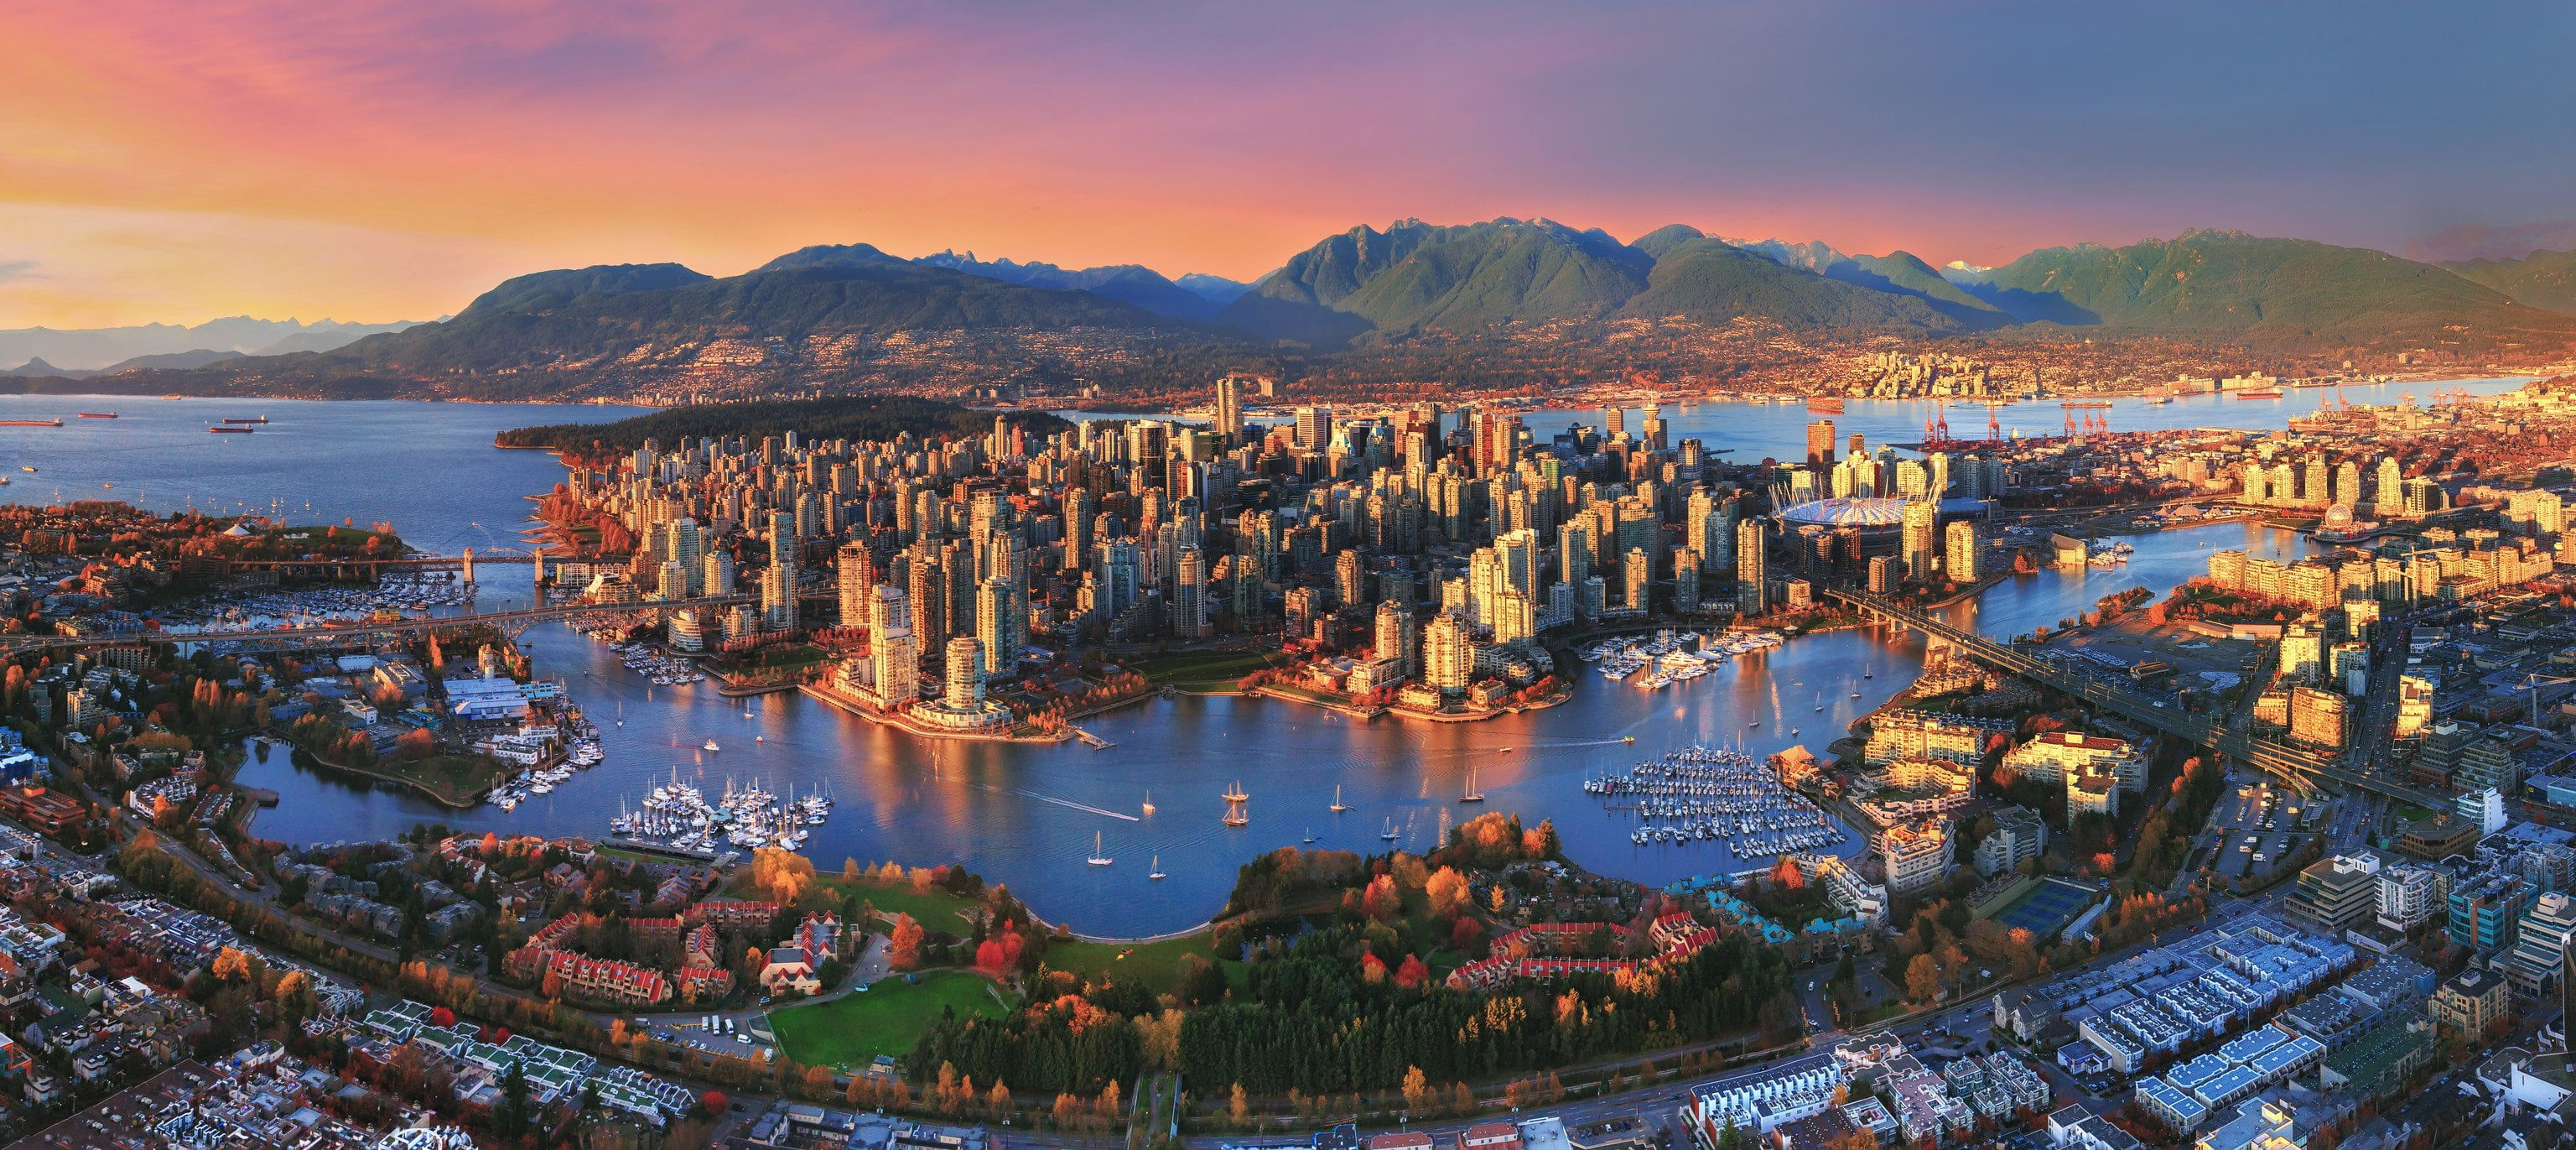 Aerial Photography Of City Vancouver Sunset City Landscape Lake Canada Cityscape Panorama 2k W Panorama Photography Vancouver Skyline Skyline Picture